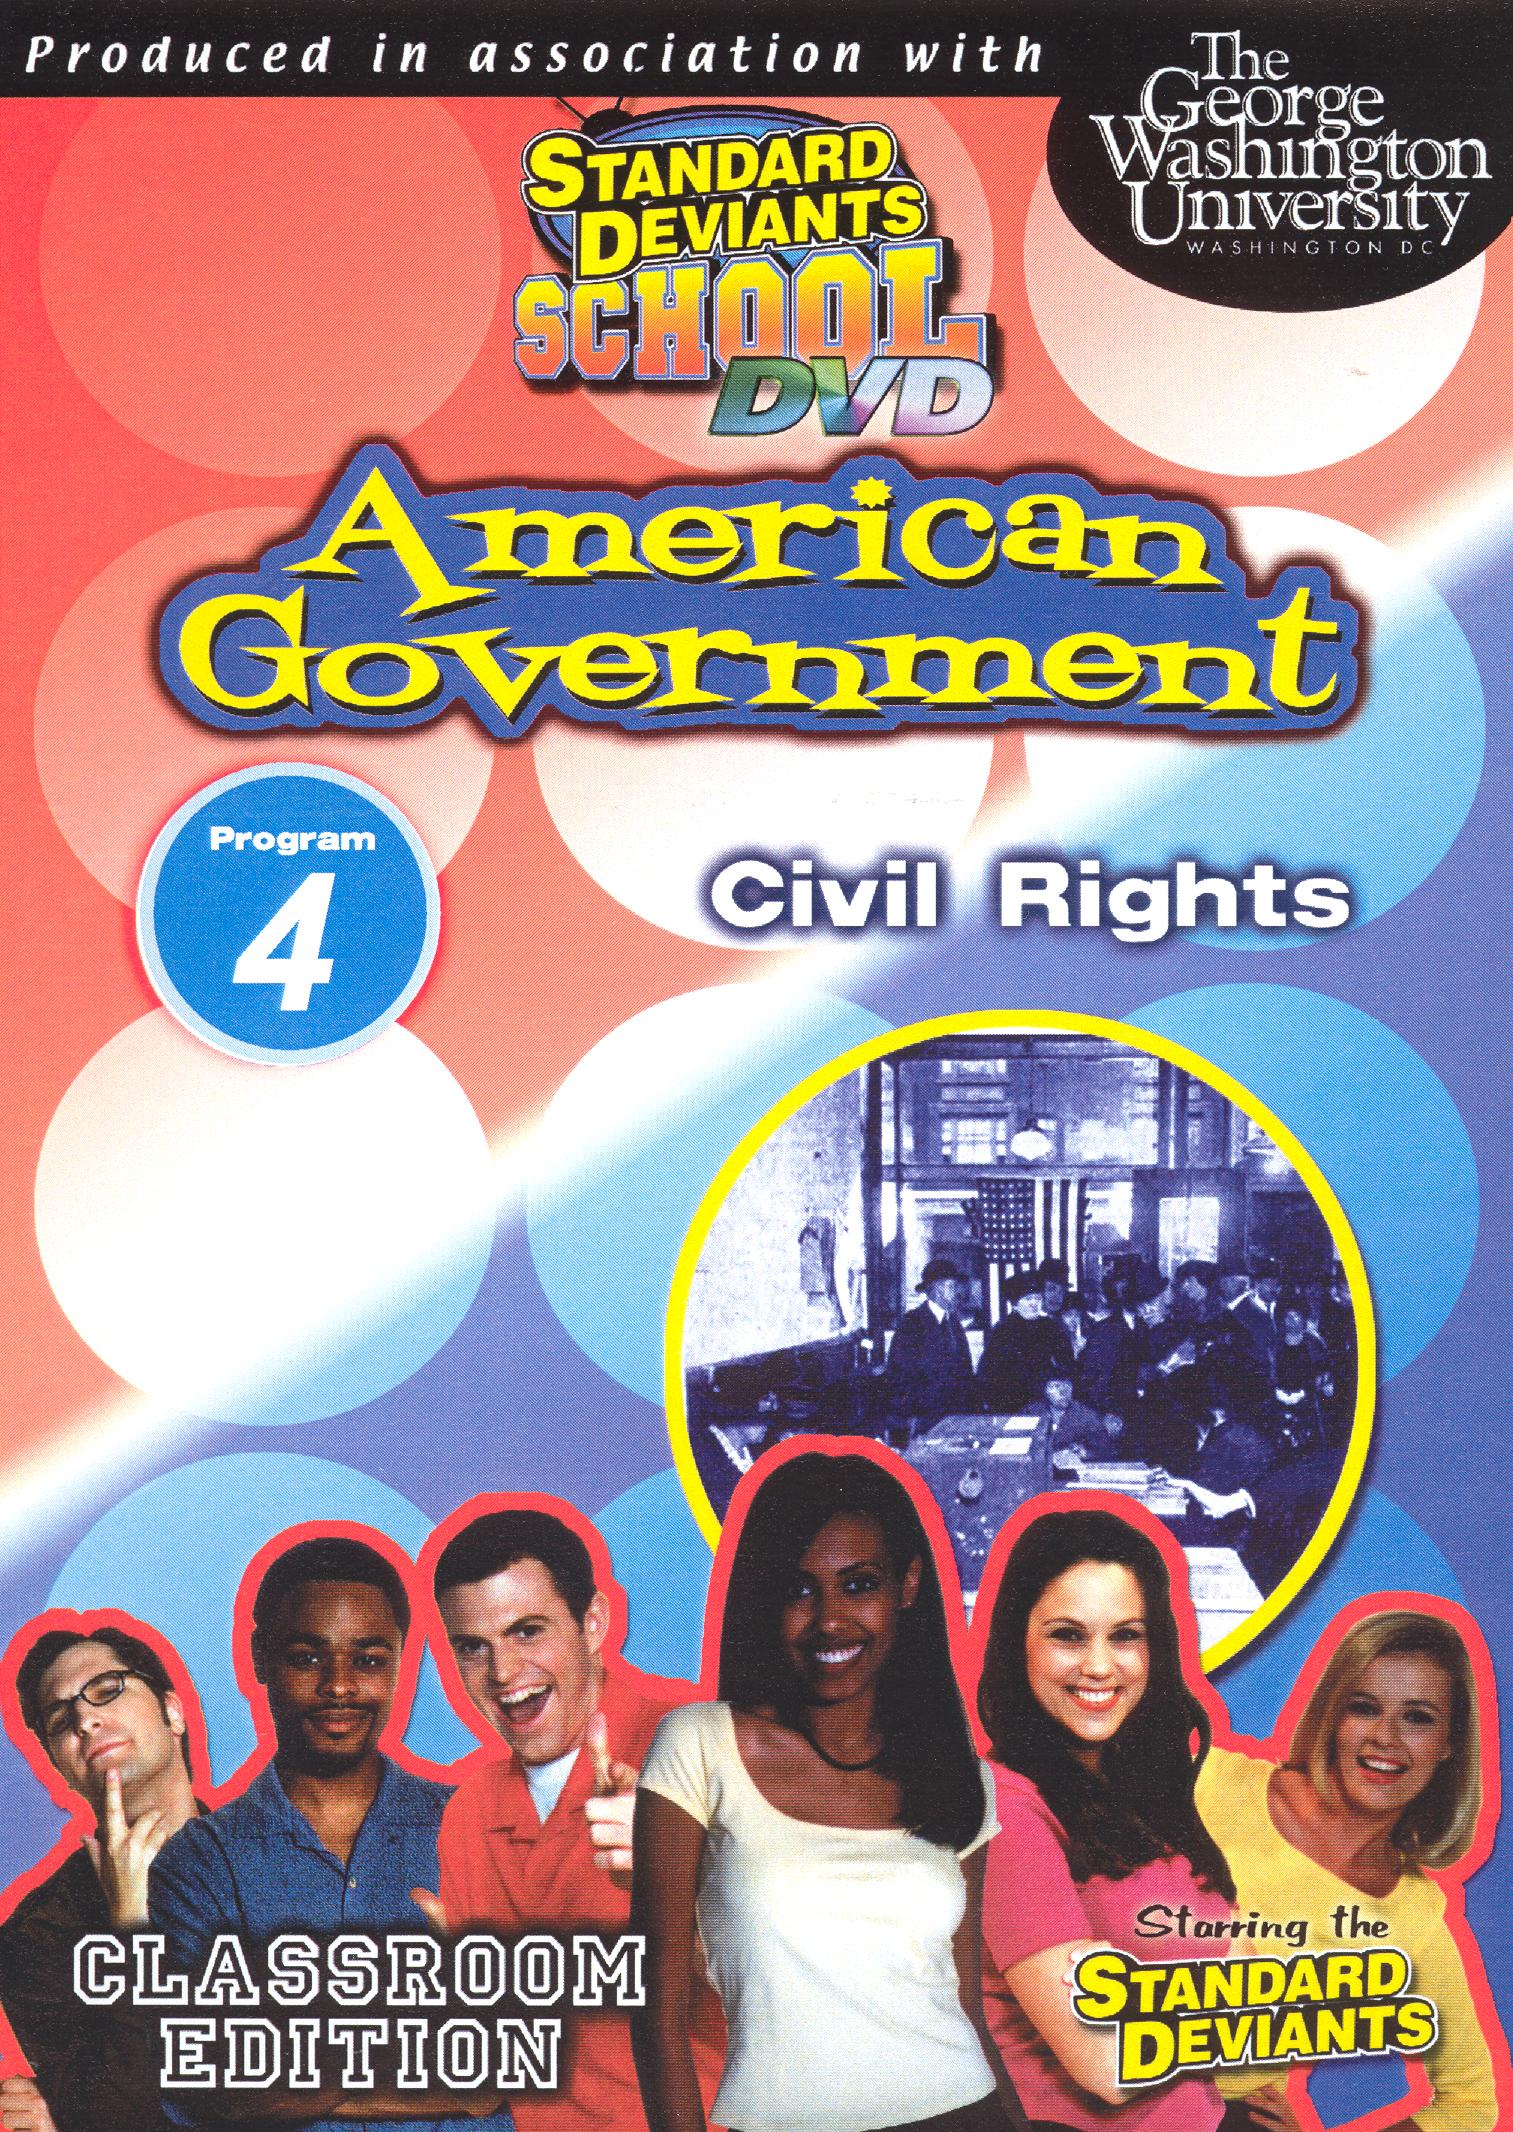 Standard Deviants School: American Government, Module 4 - Civil Rights